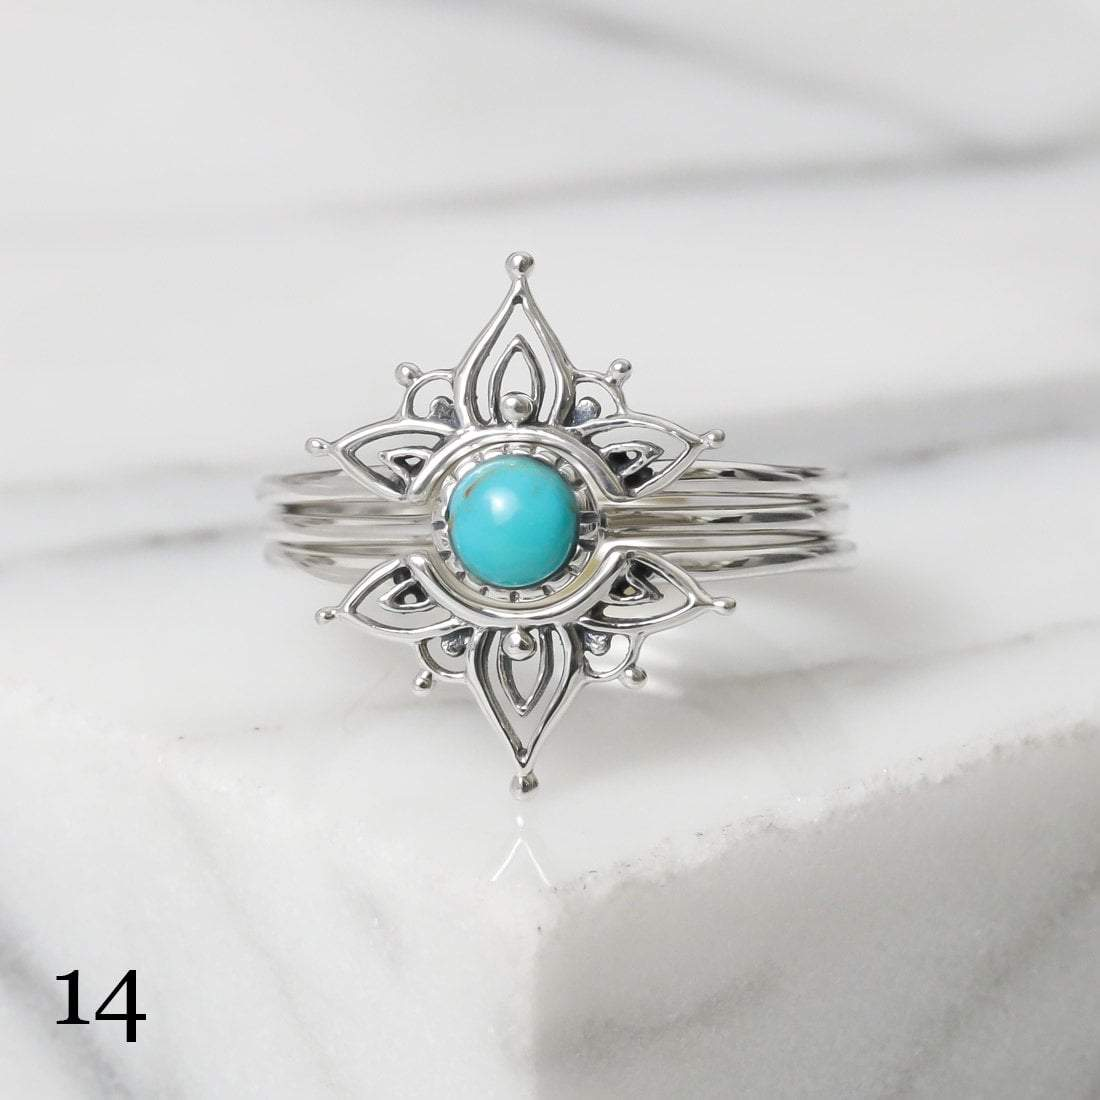 Midsummer Star Ring 12 Days of Festivities - Sample Sale 1